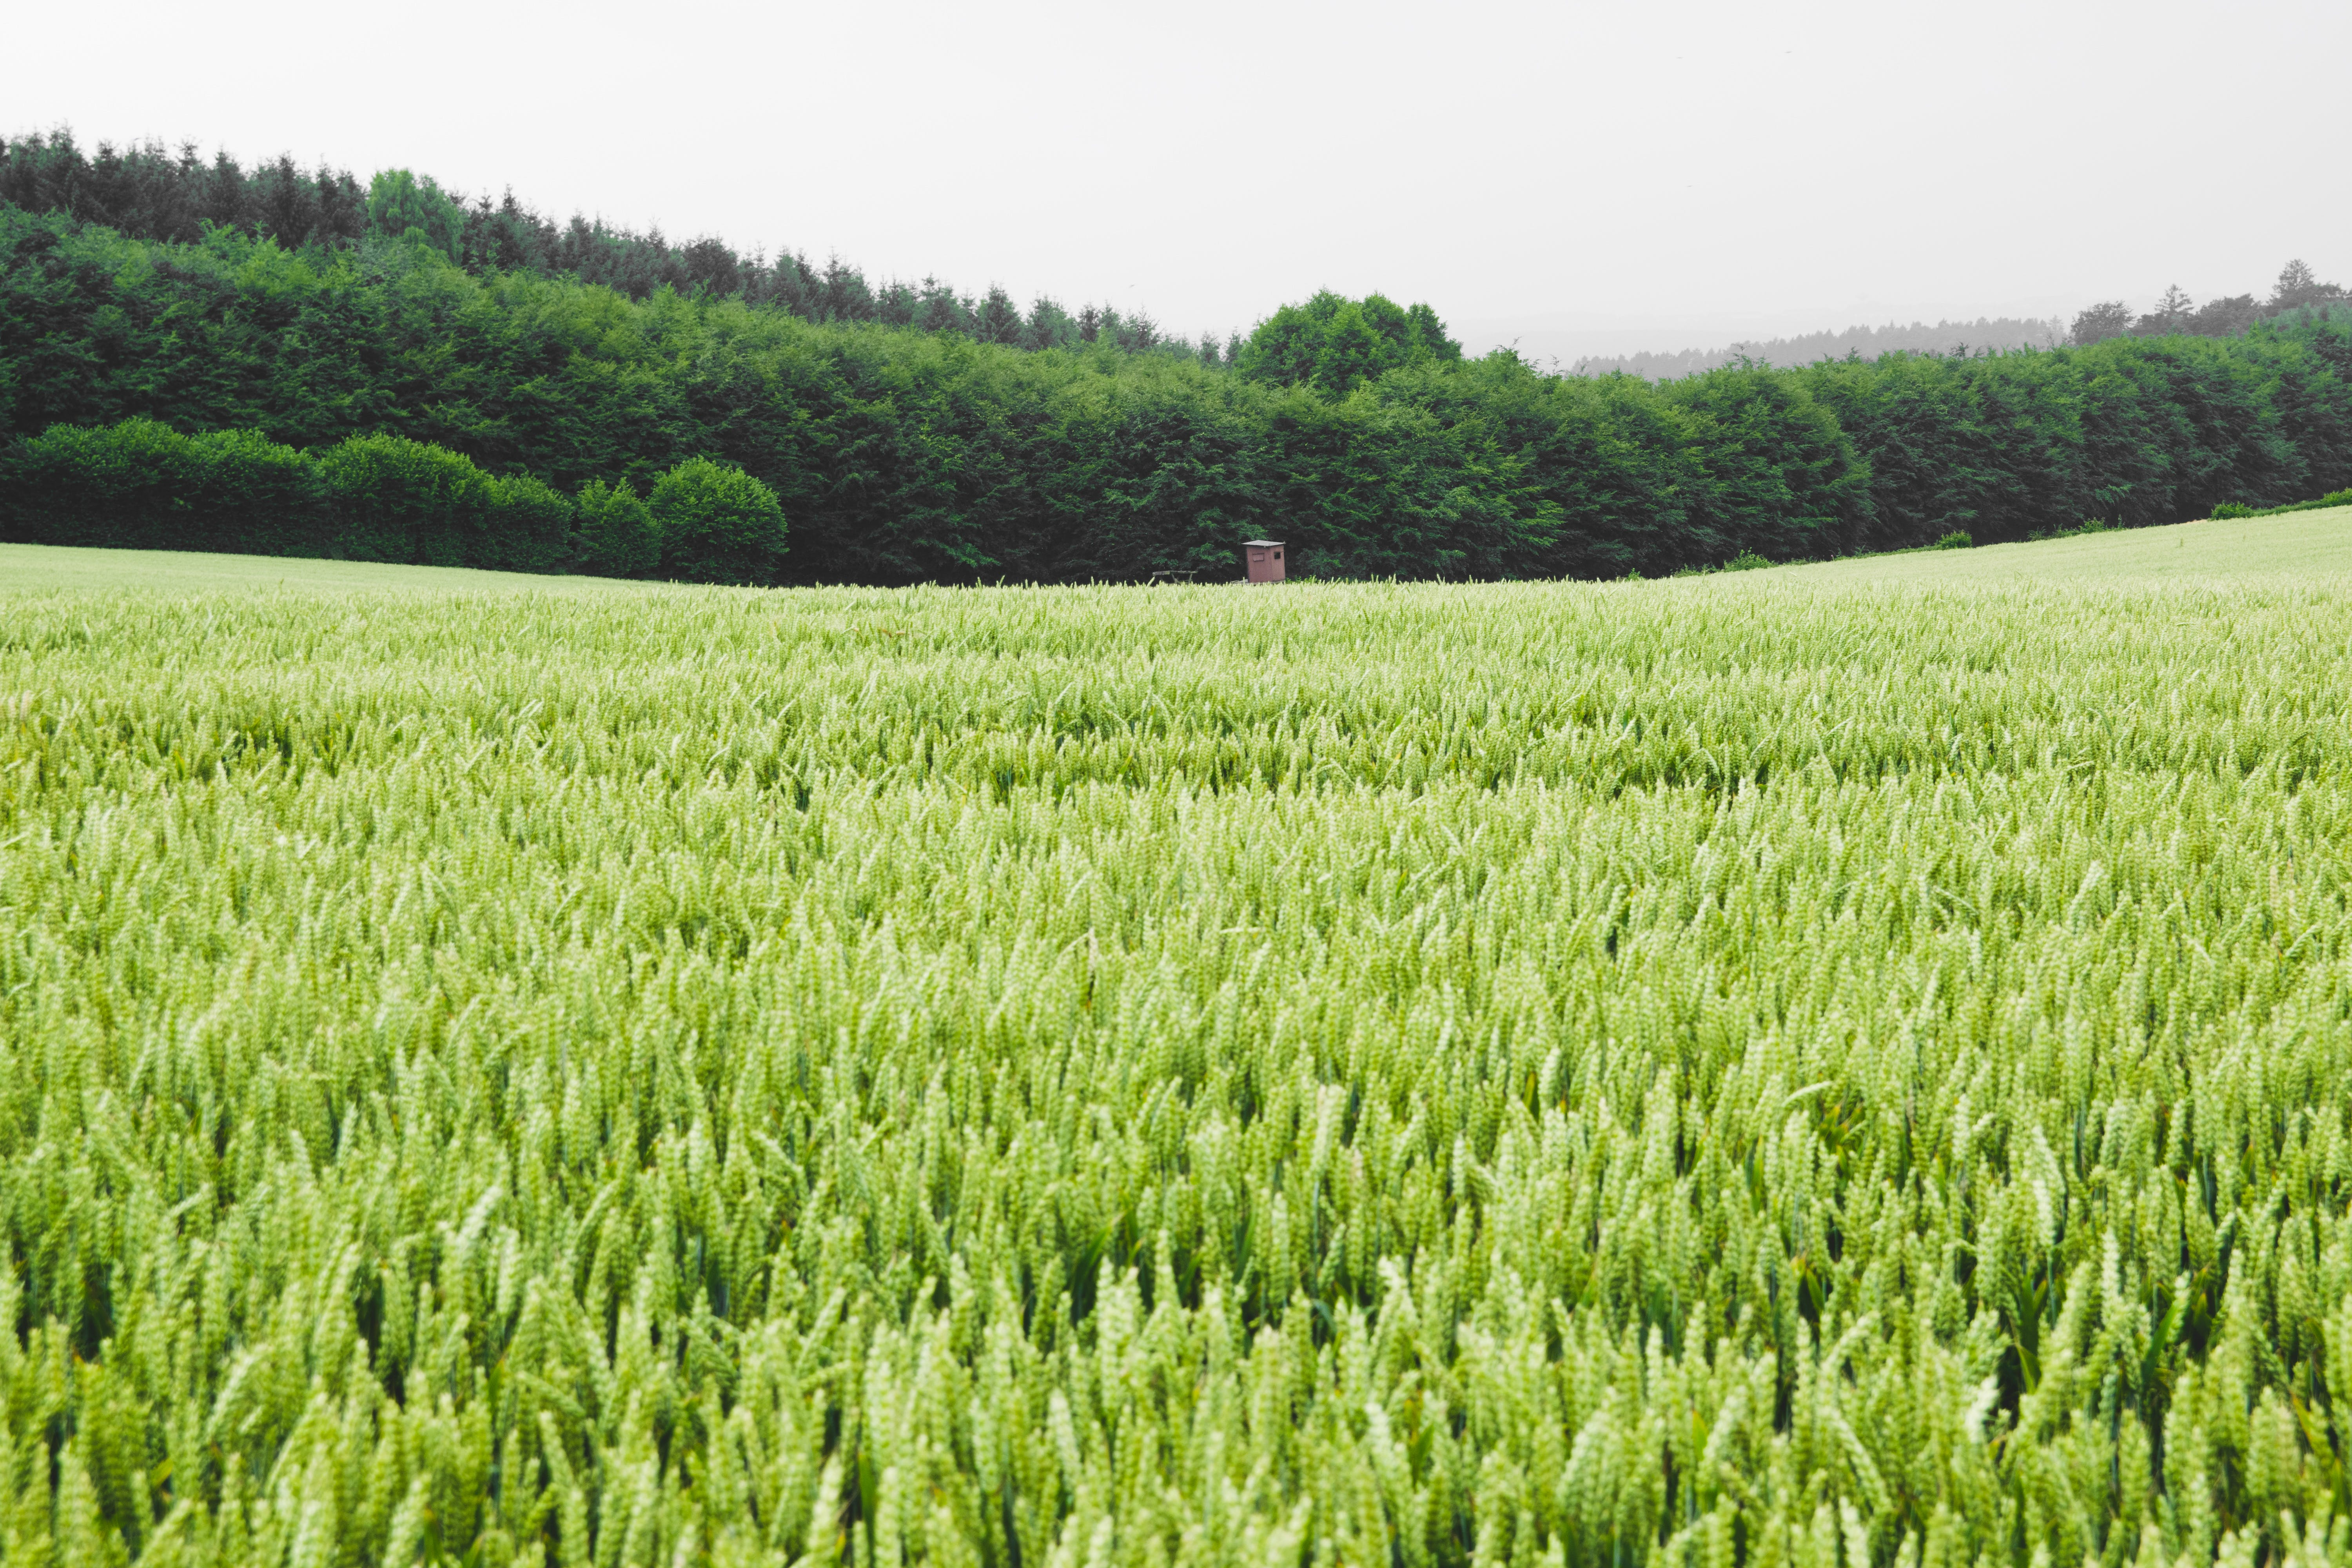 Green Leafed Grass Field